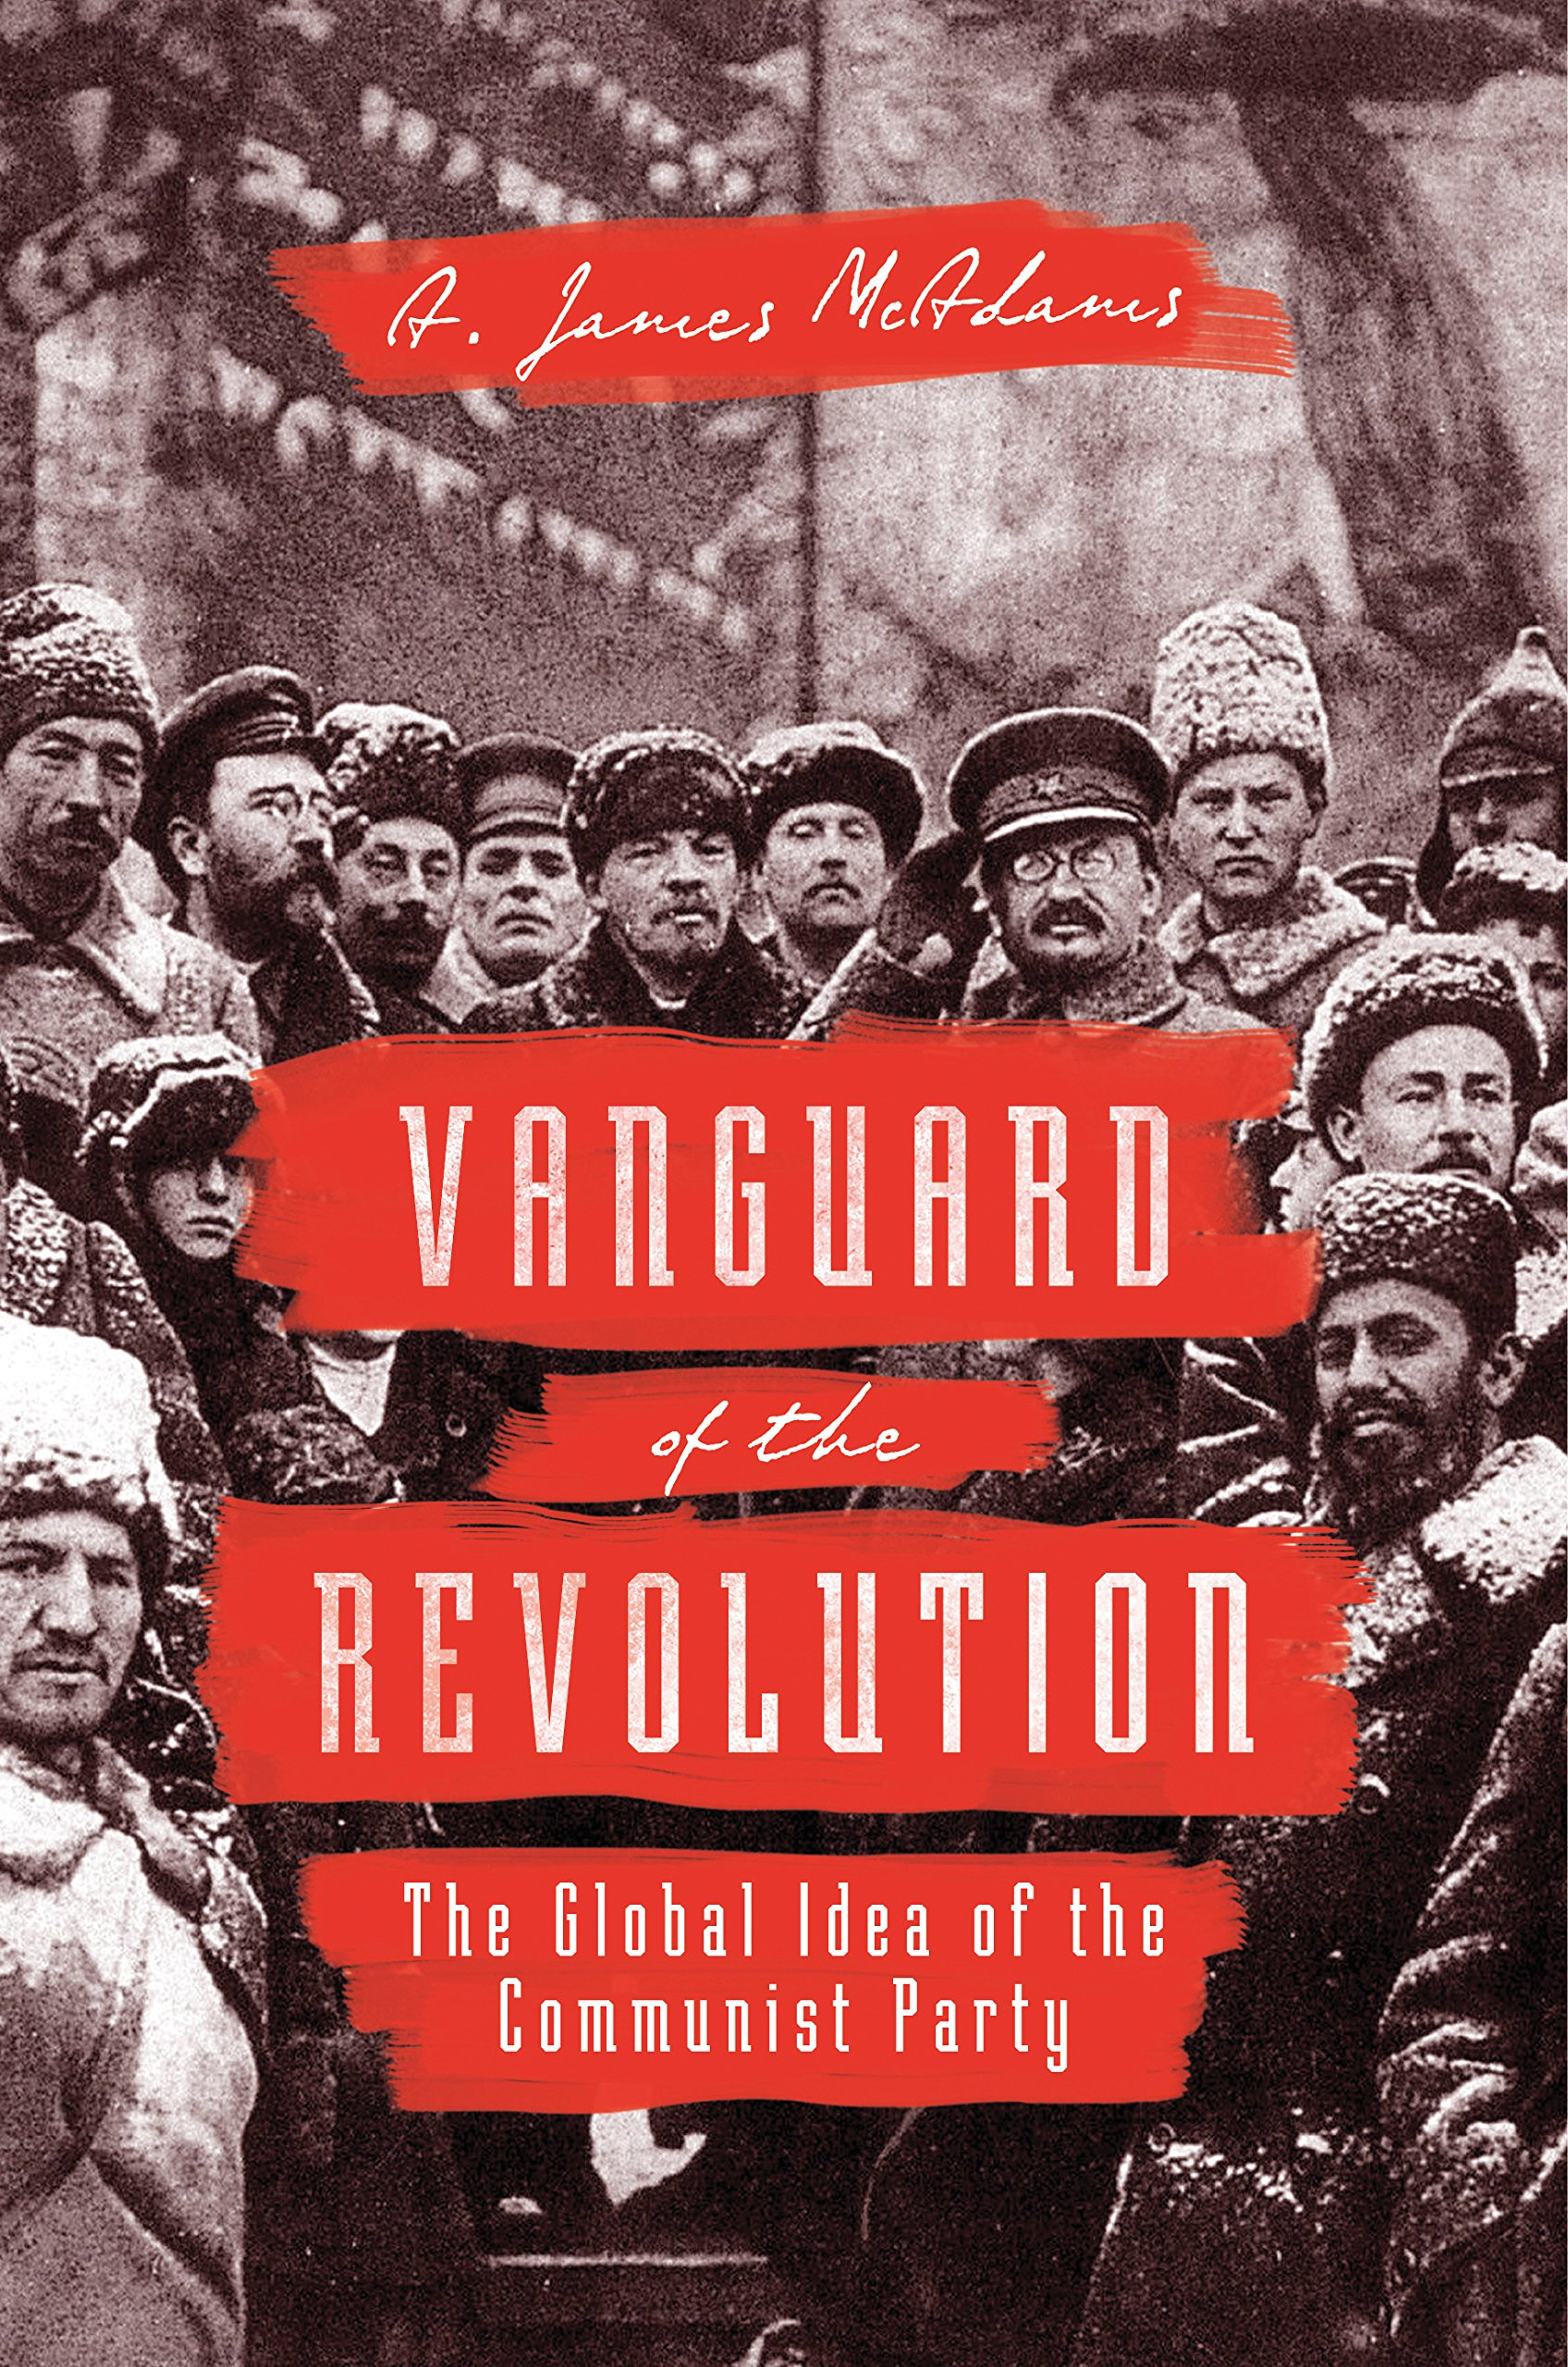 Image OfVanguard Of The Revolution: The Global Idea Of The Communist Party